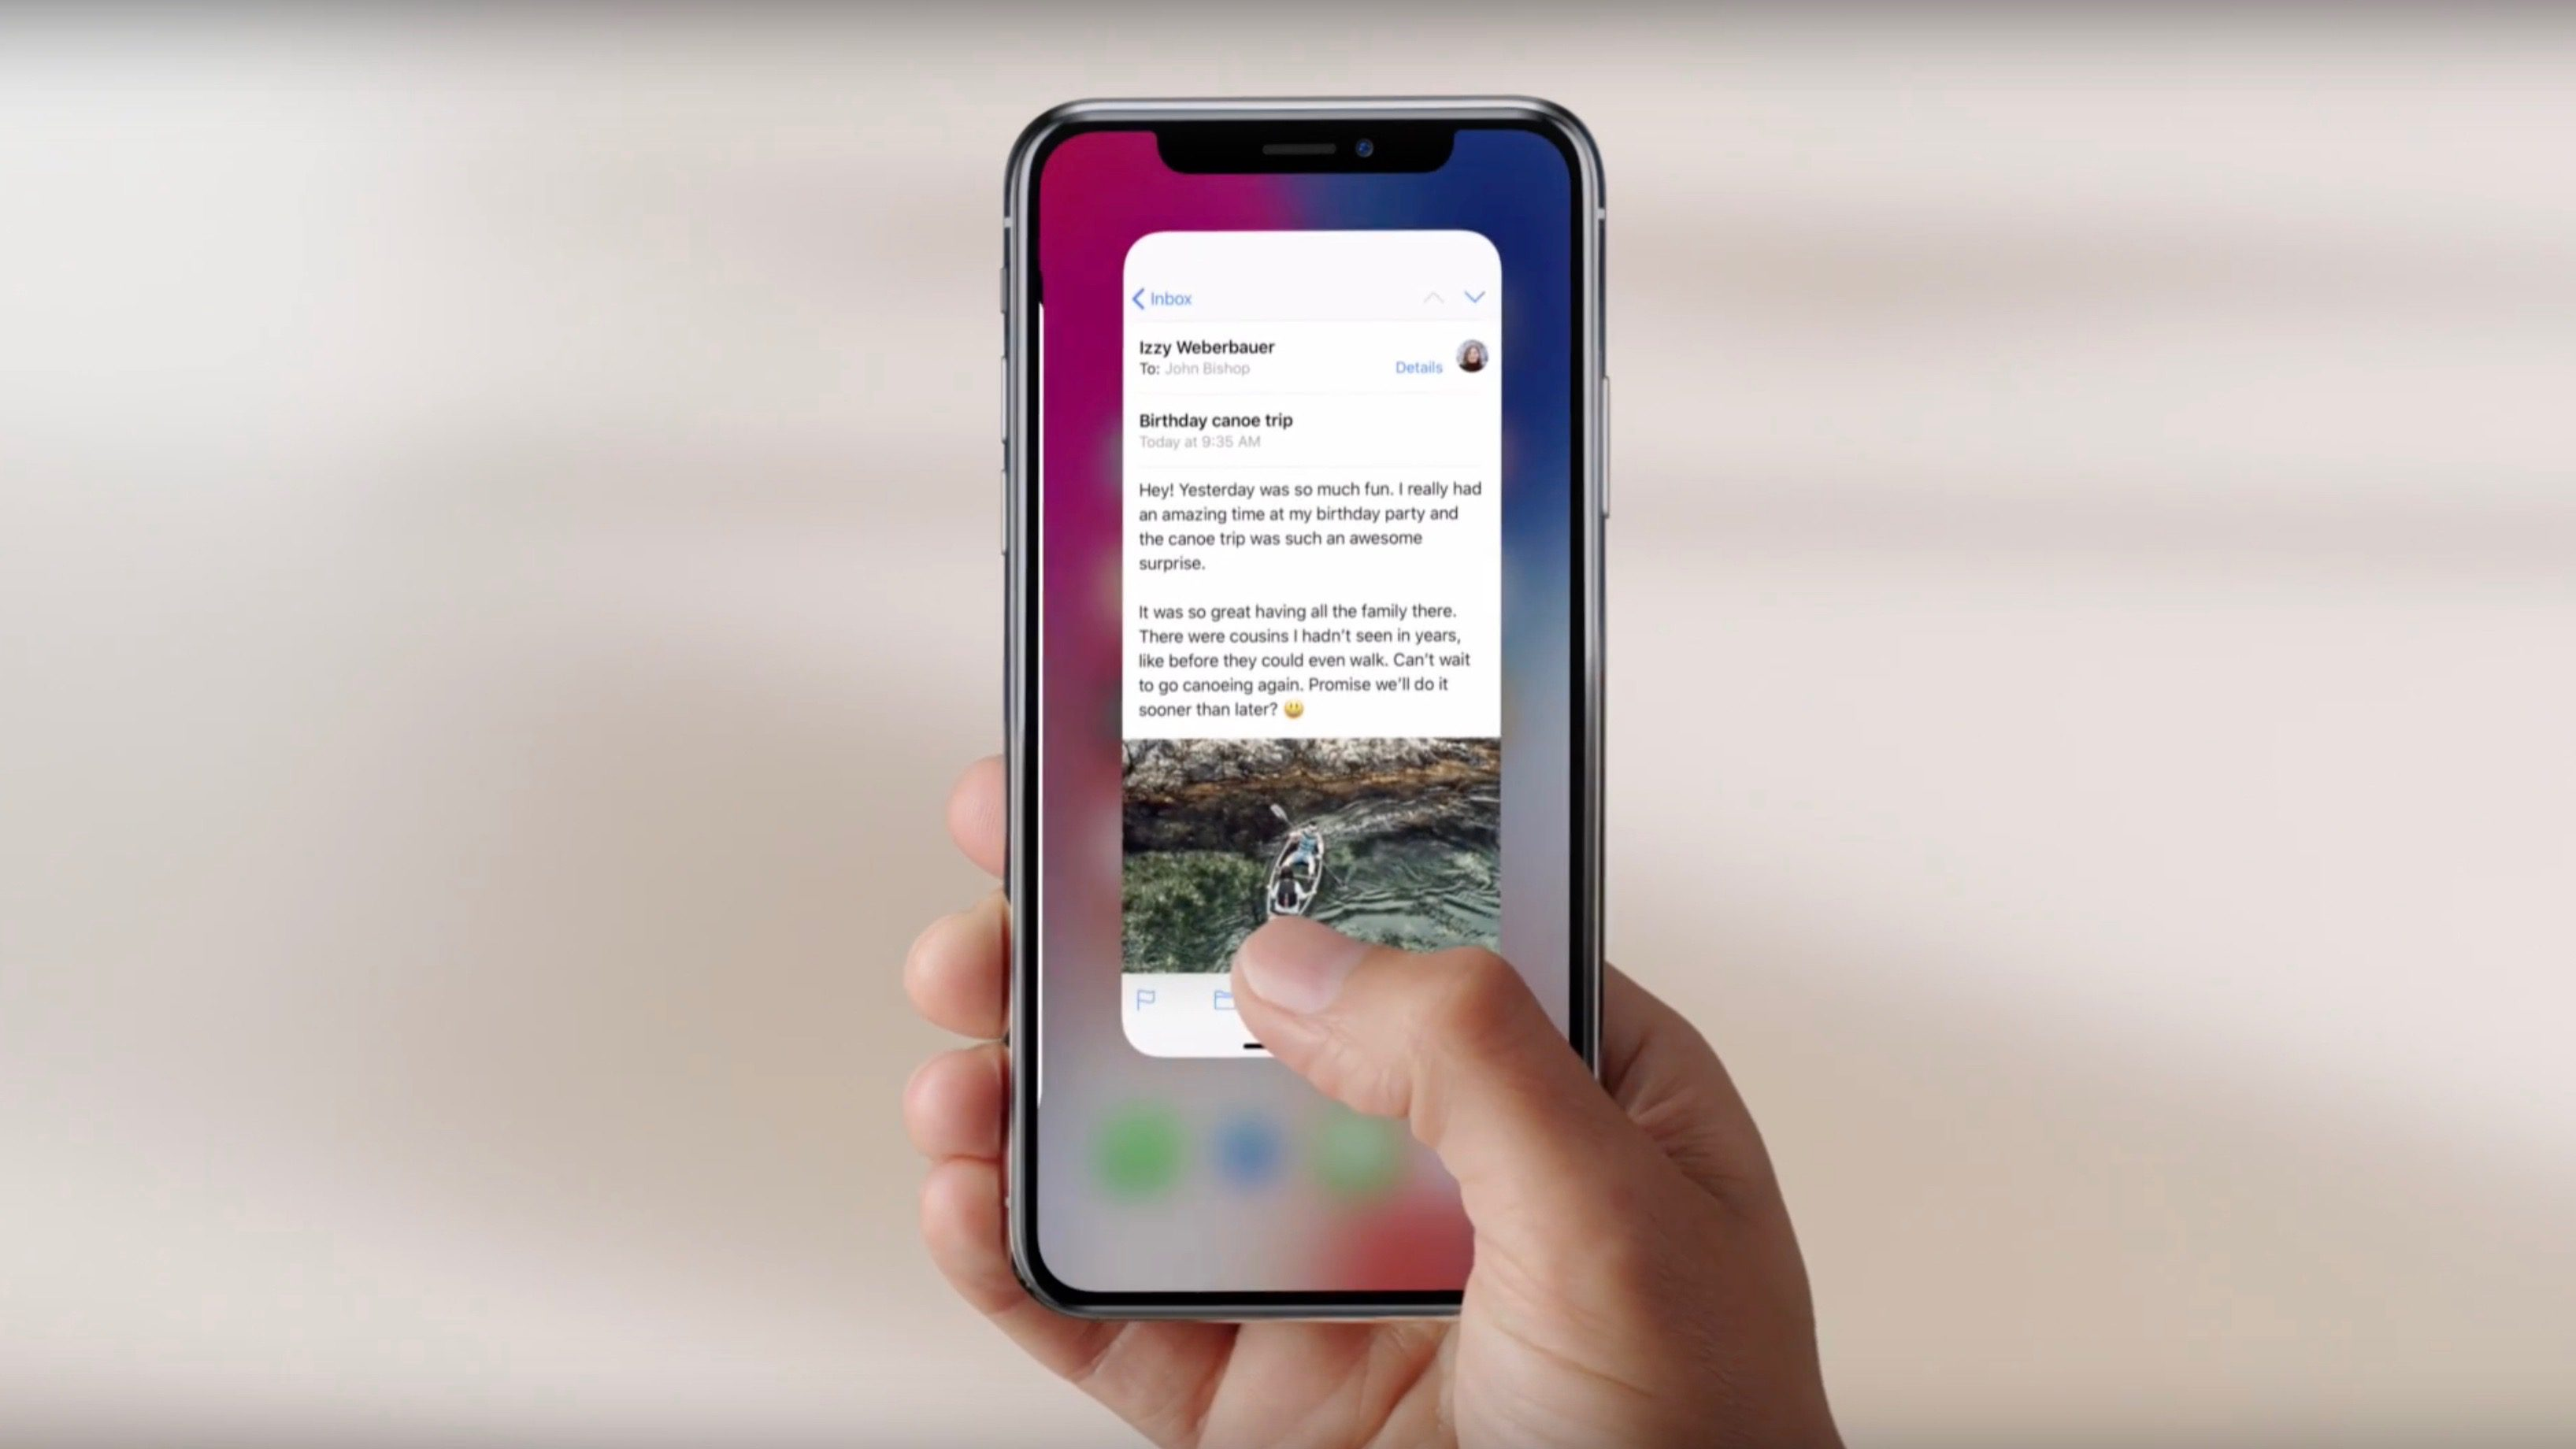 Iphone X Features Apple Releases Iphone X Guided Tour Video To Help Users